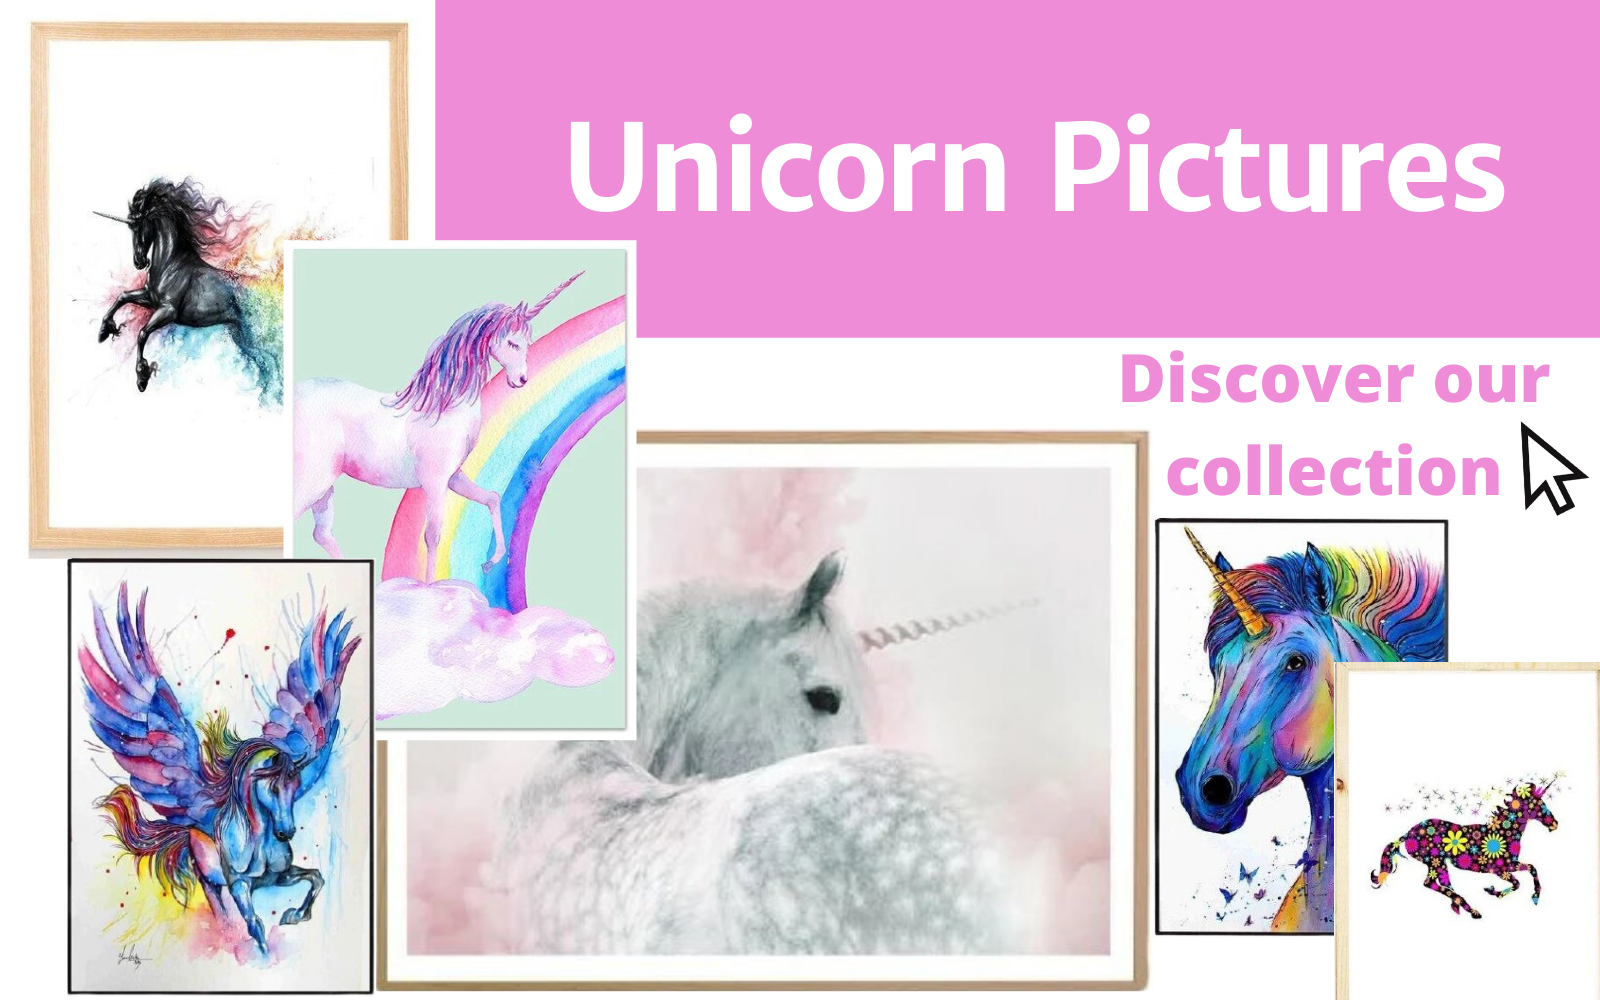 unicorn pictures collection